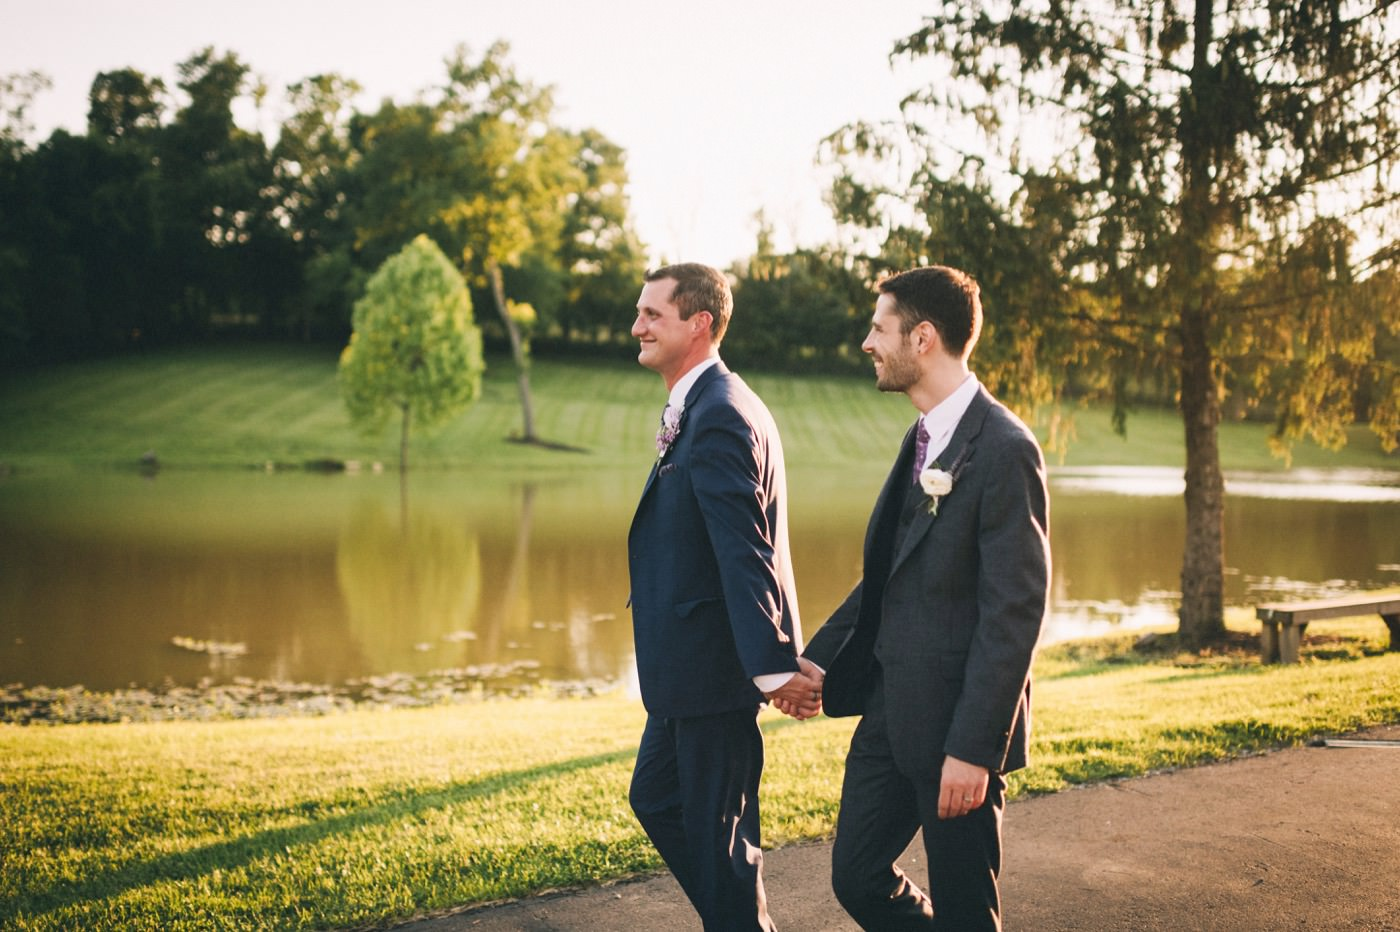 Will-Nate-Louisville-LGBTQ-Pride-Month-Kentucky-Wedding-By-Sarah-Katherine-Davis-Photograpy0060.JPG